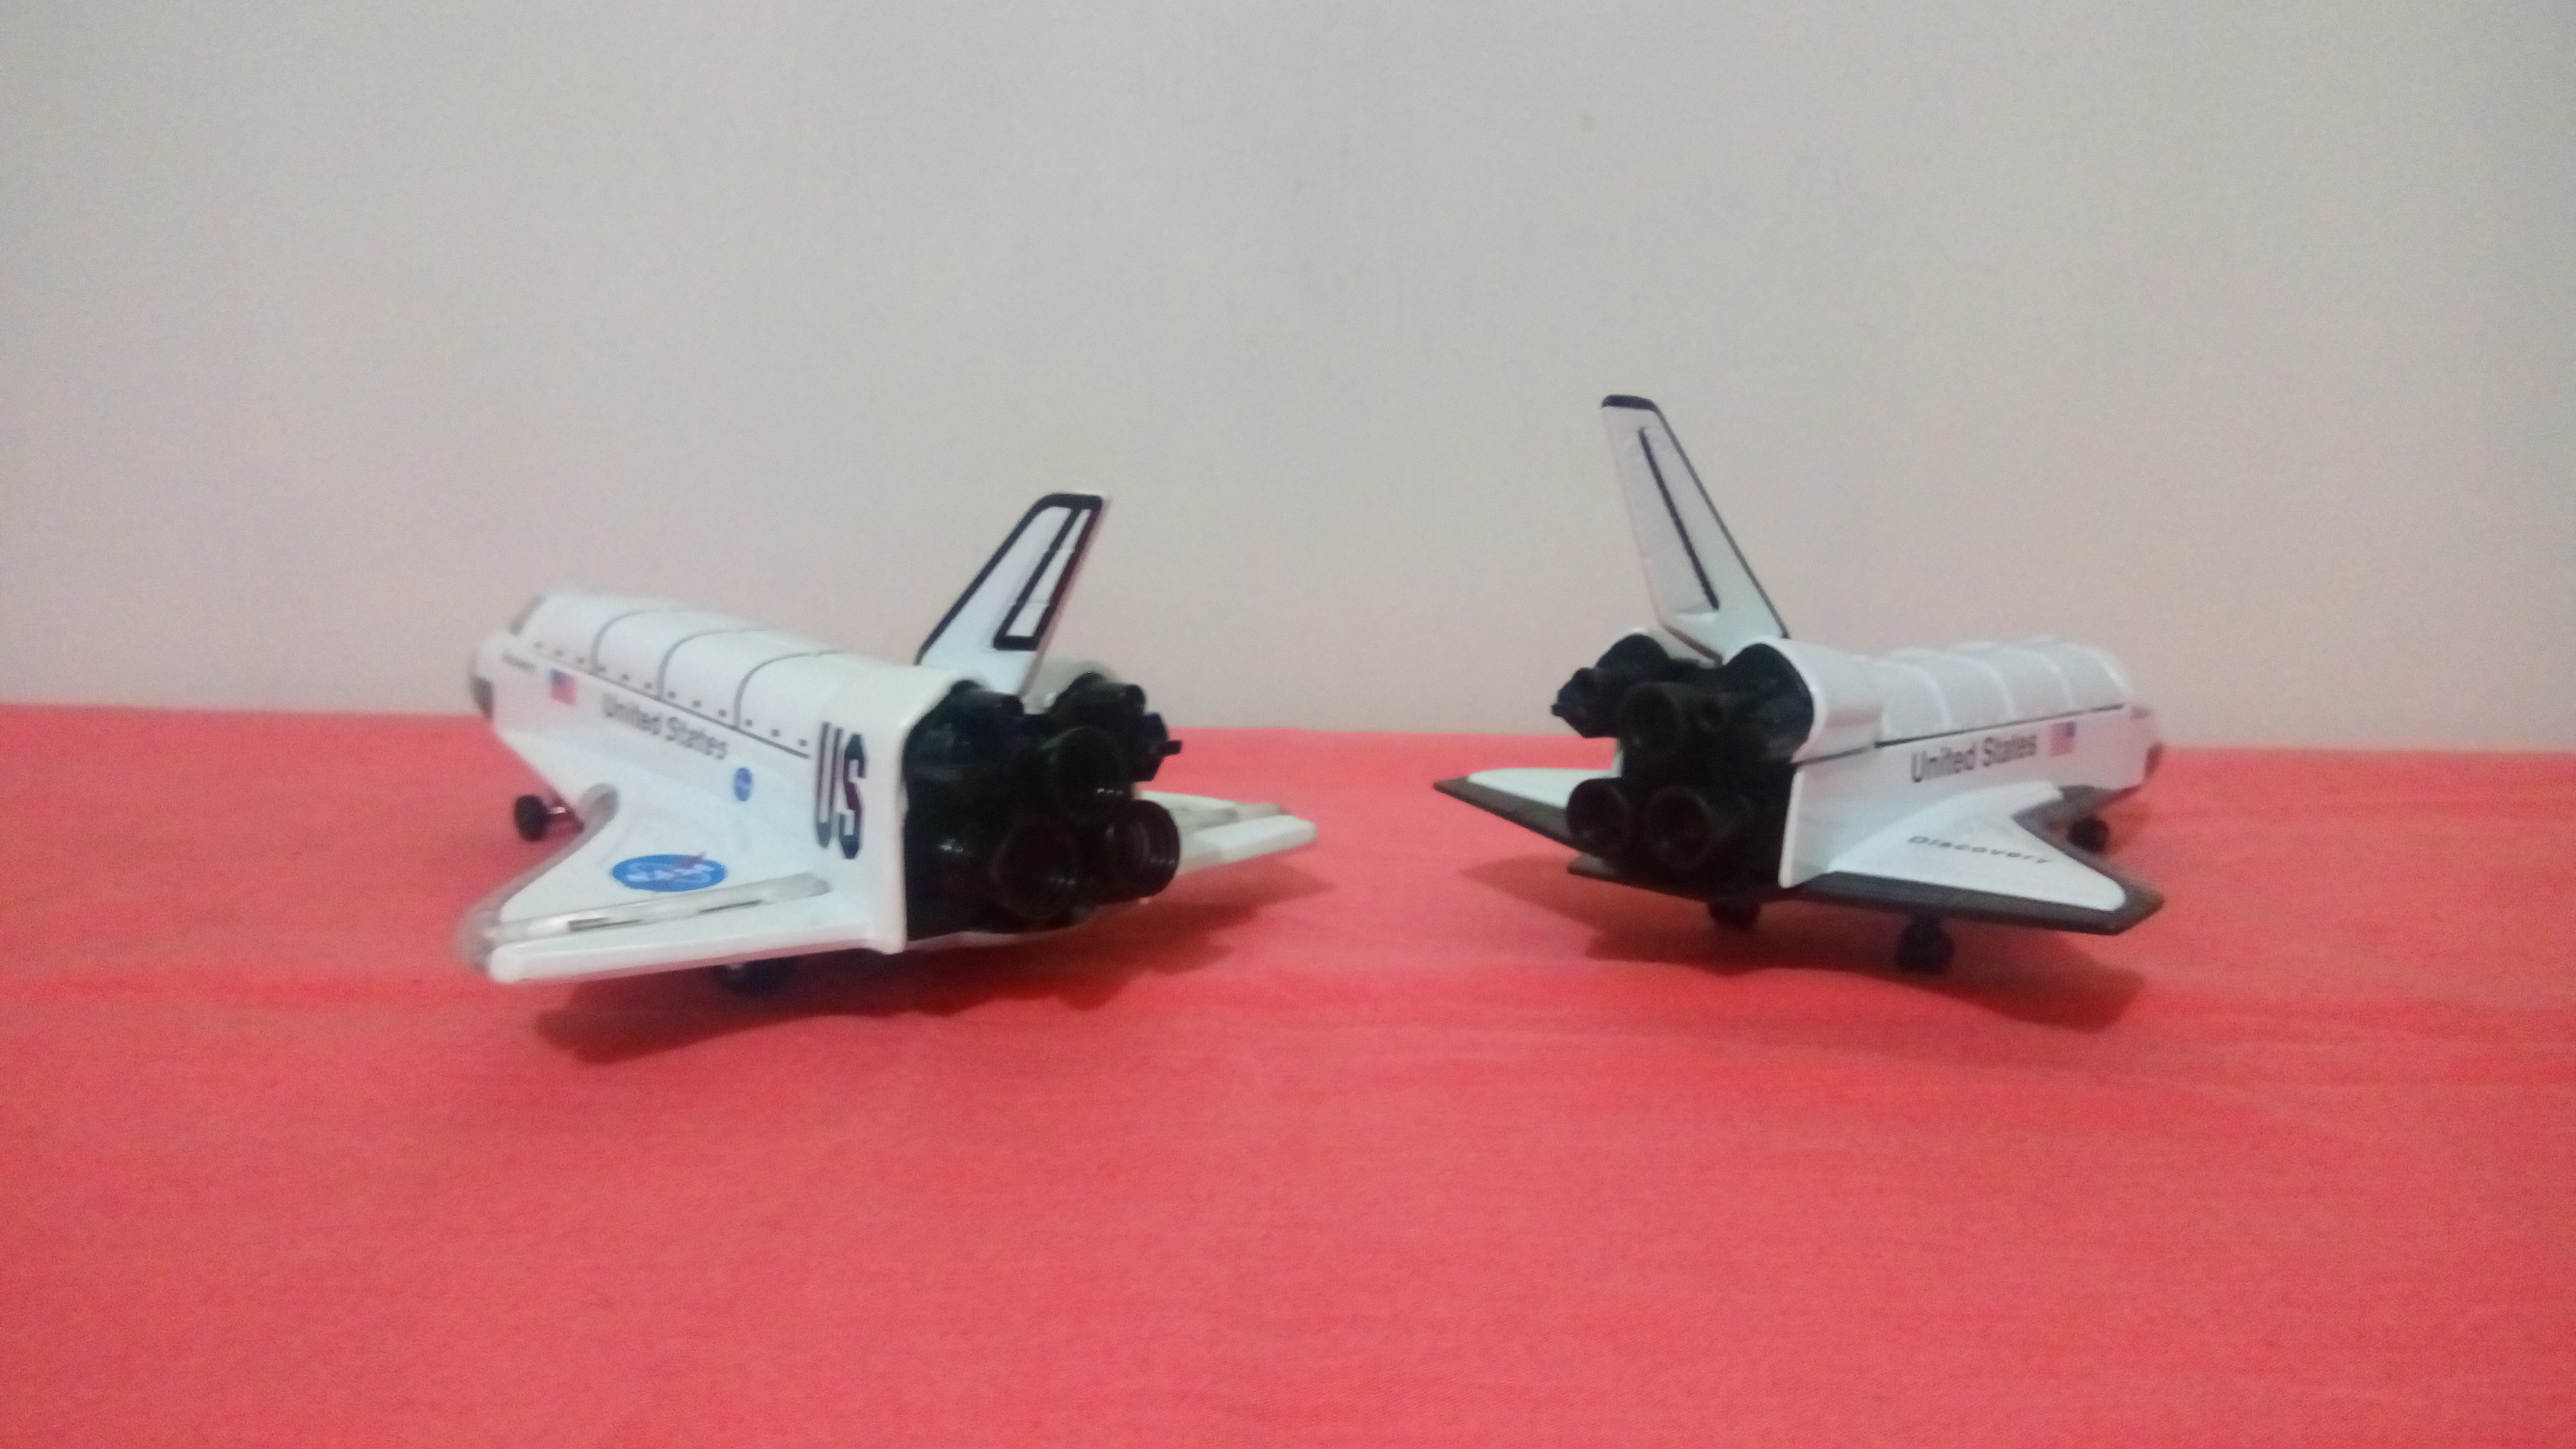 File:Space Shuttle Toy 4.jpg